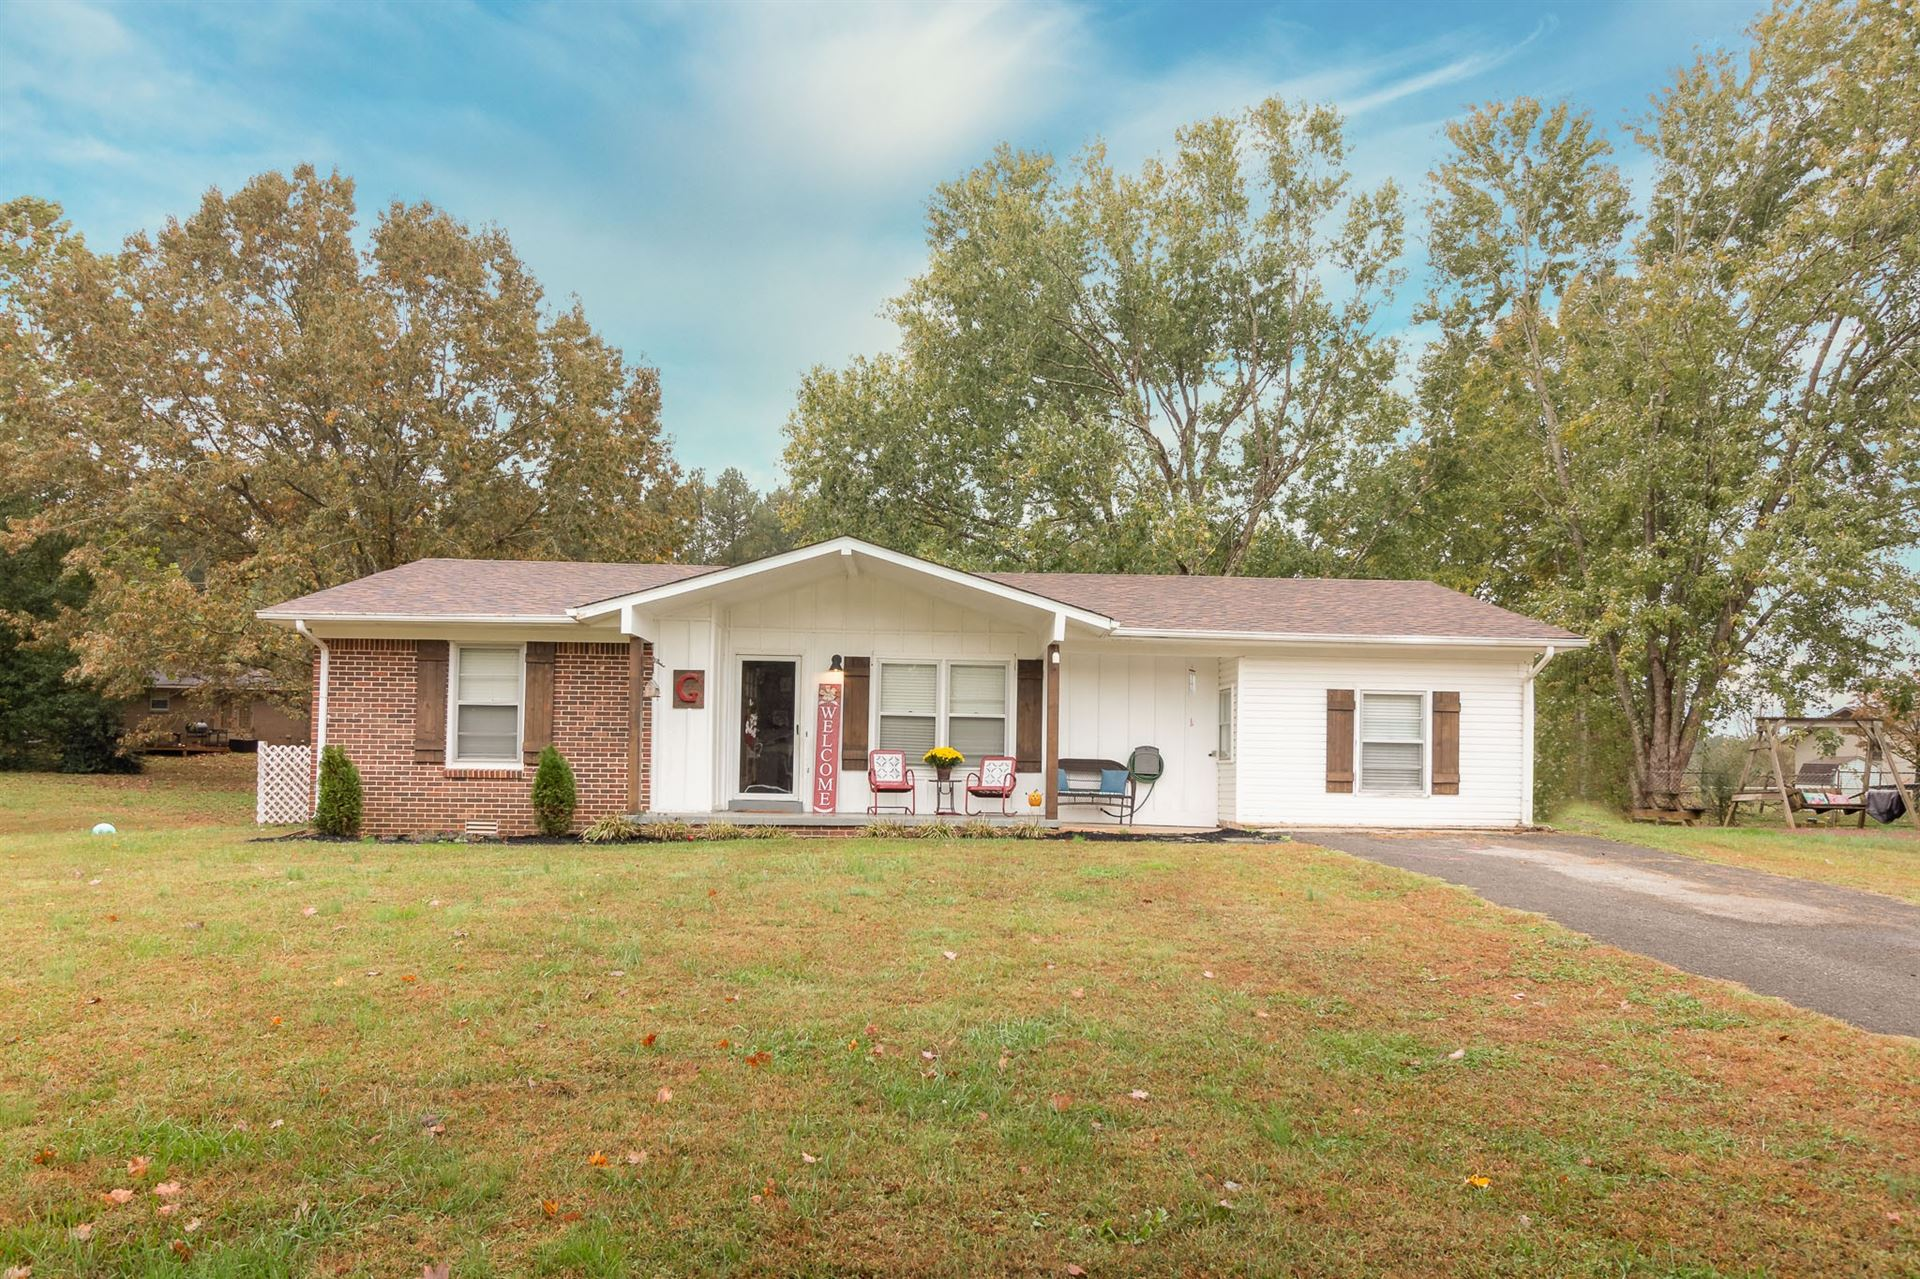 Photo of 1709 Whippoorwill Dr, Lawrenceburg, TN 38464 (MLS # 2201763)